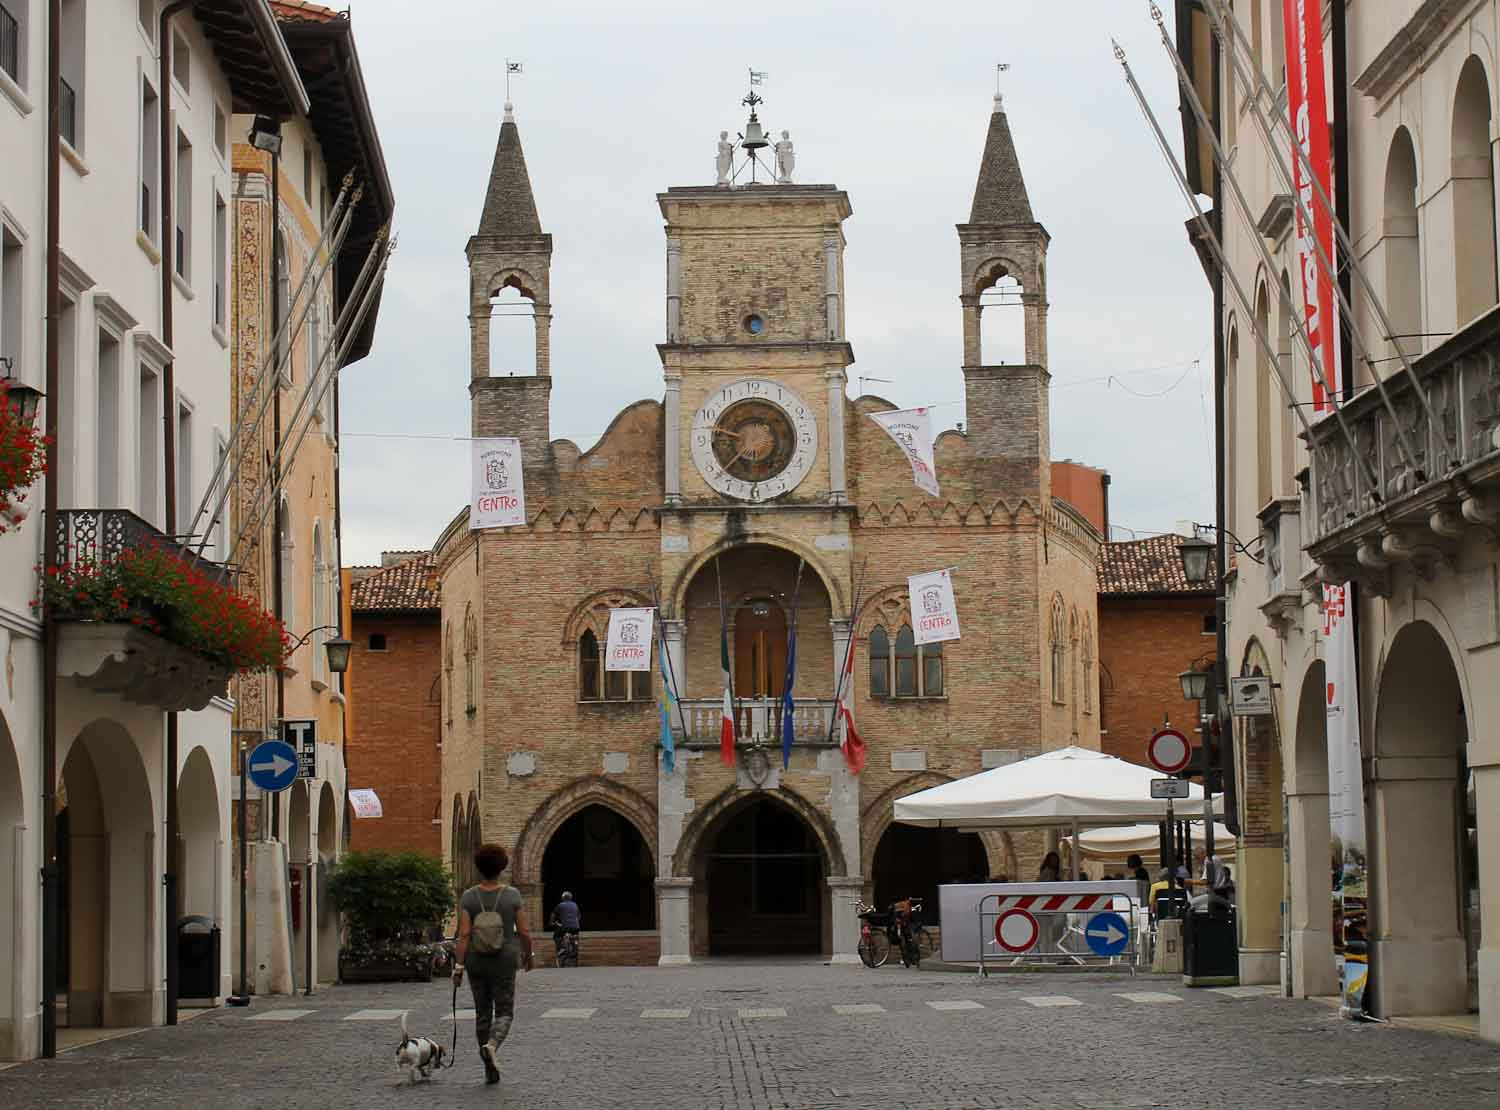 The Medieval town hall in Pordenone